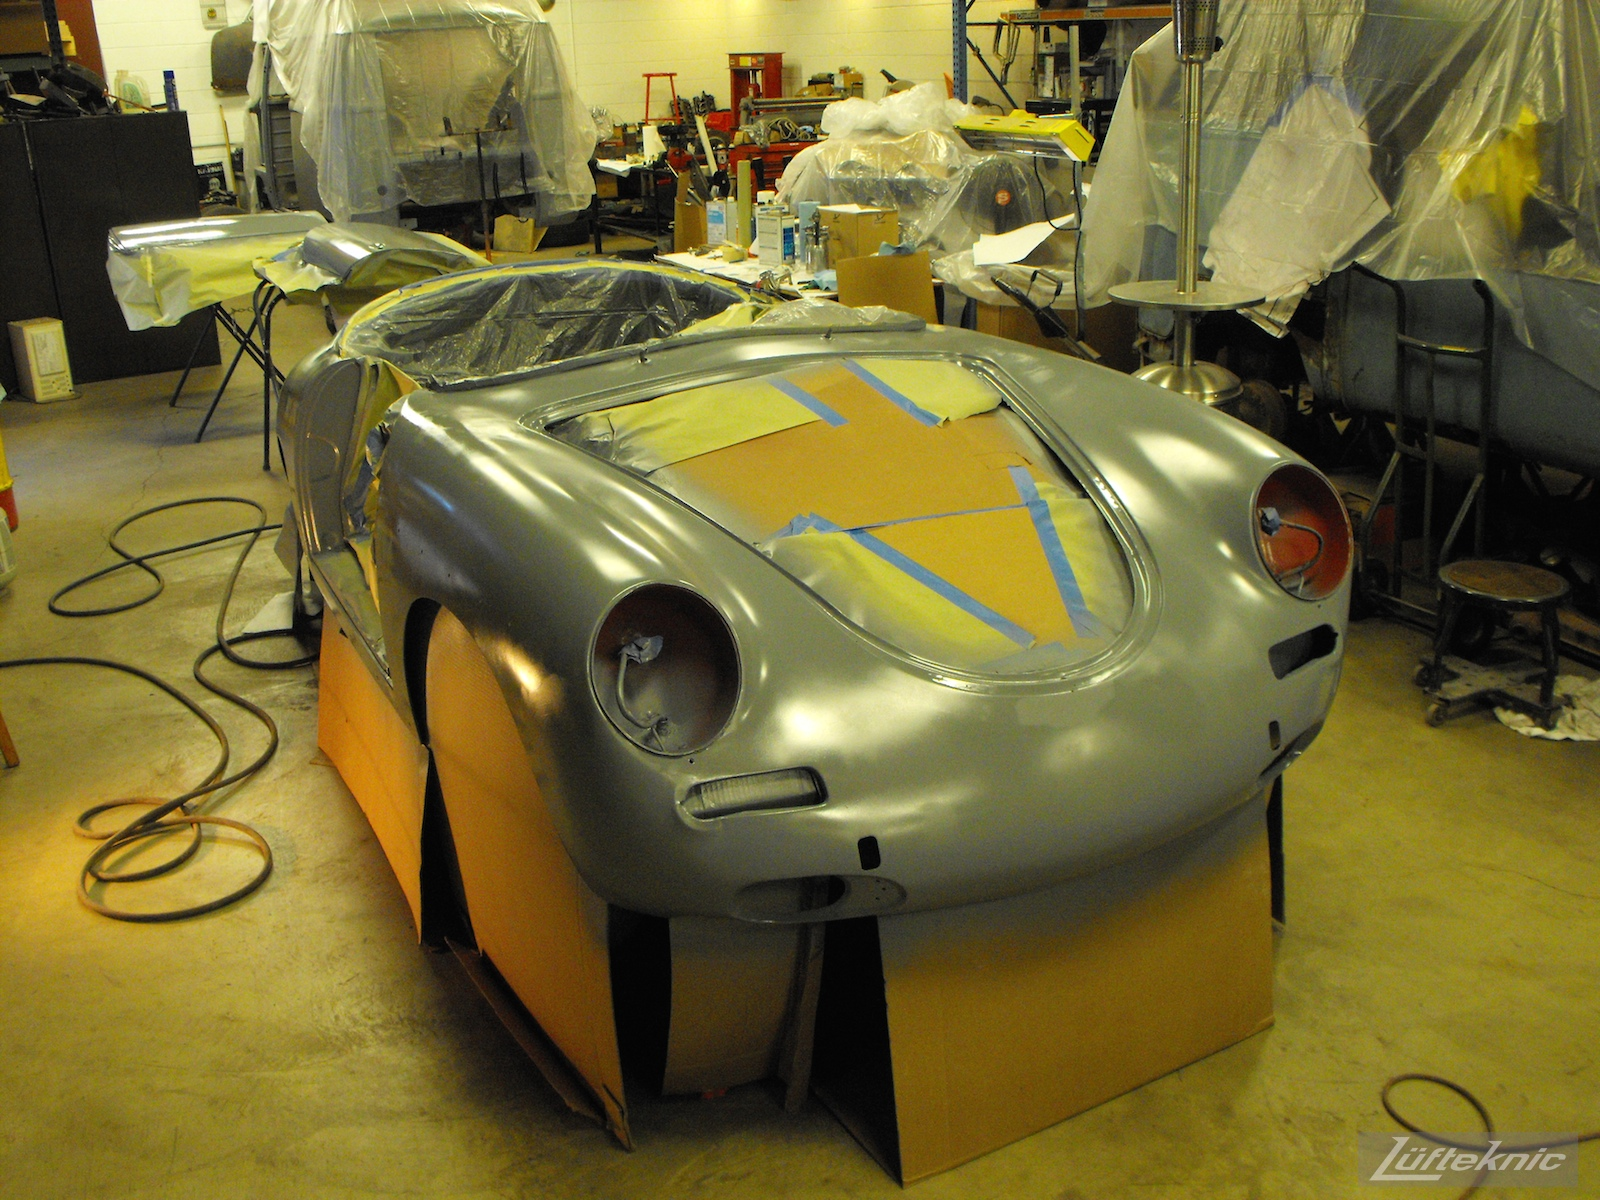 Primered body on a 1961 Porsche 356B Roadster restoration.